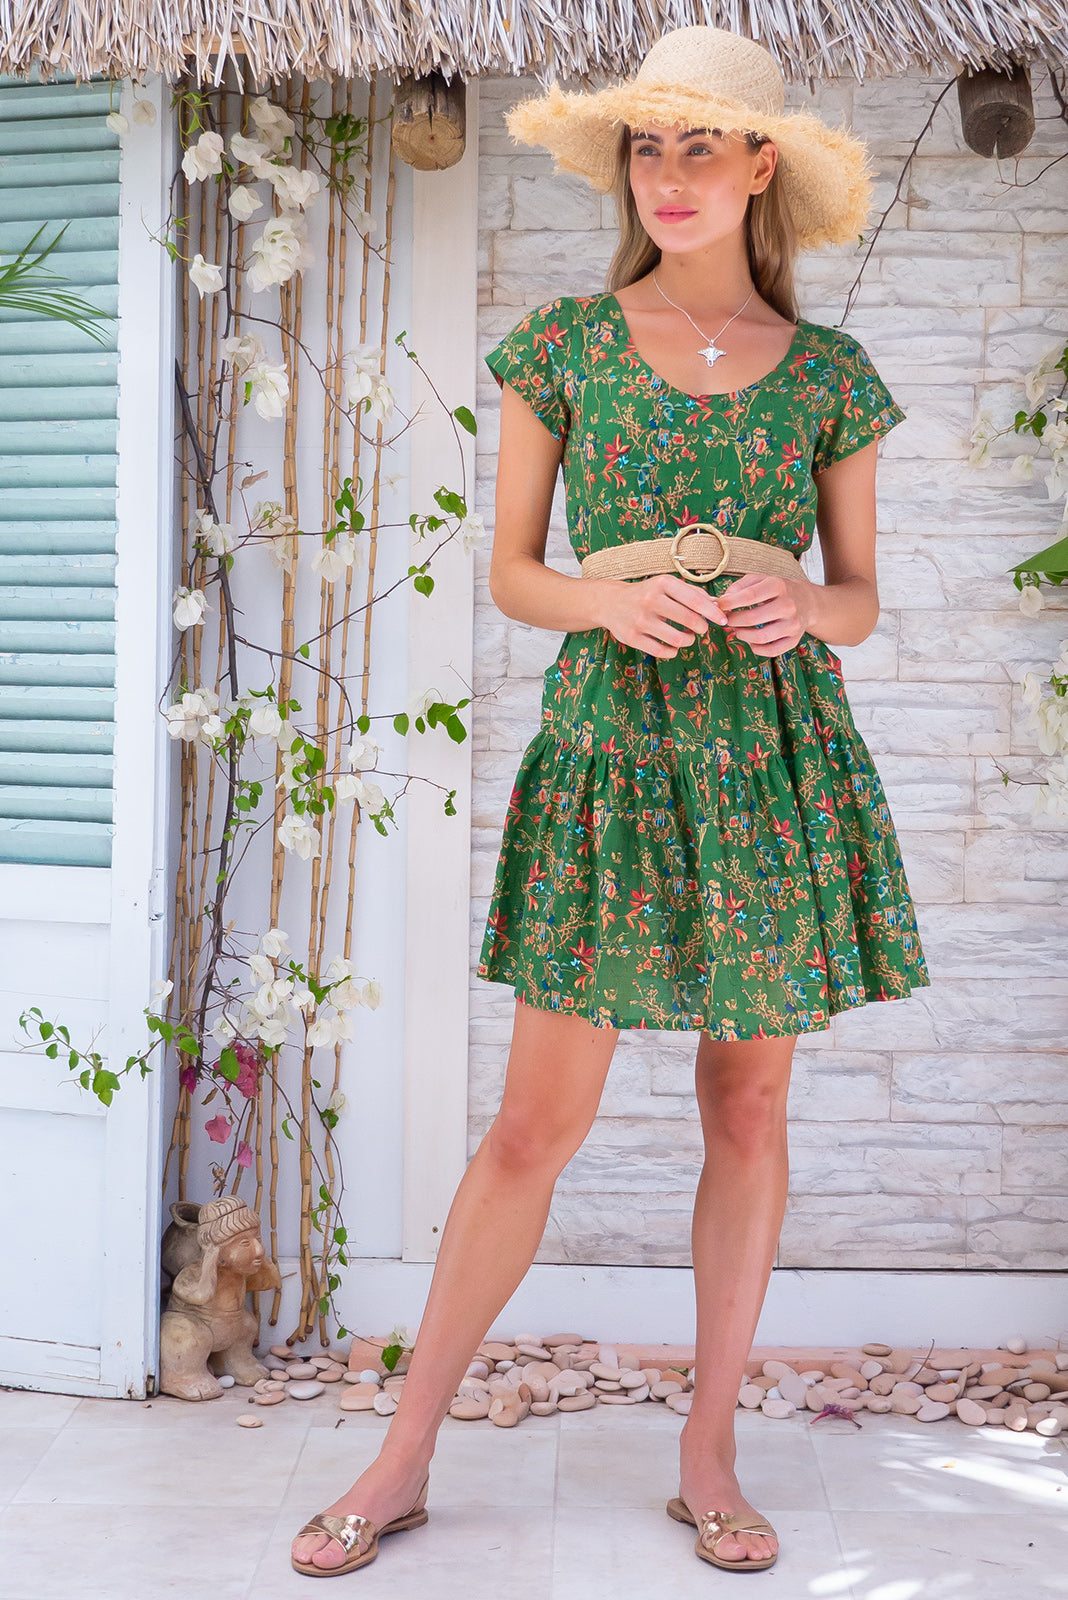 Lulu Elle Jungle Green Mini Dress, bohemian summer style, 100% cotton, slightly sheer, side pockets, tiered skirt, warm toned green base with small coral, gold, teal and white floral print.